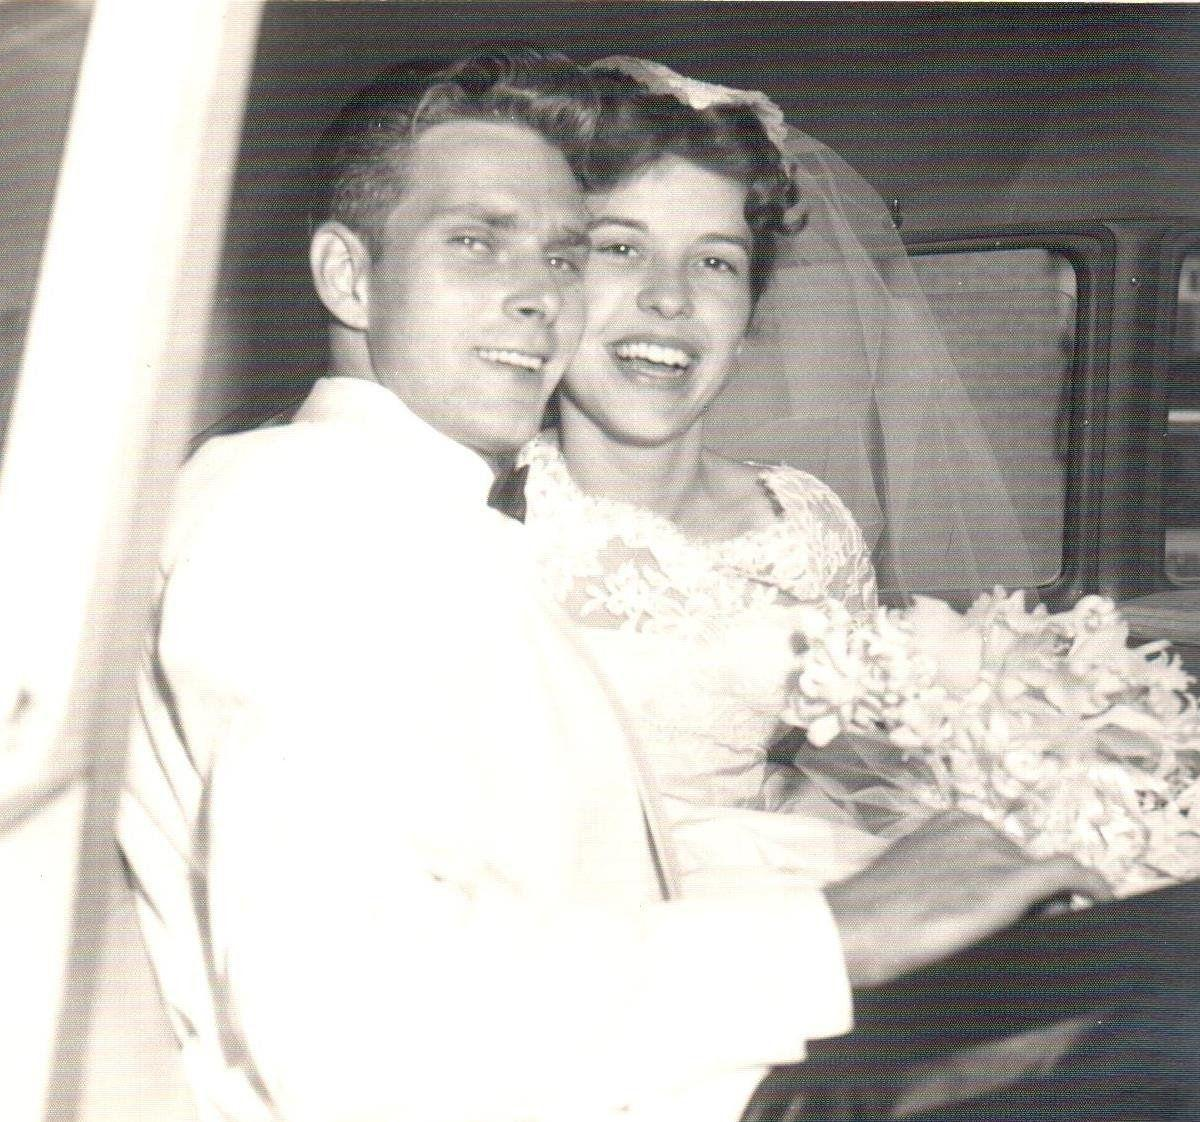 Bill and Pat Olwig